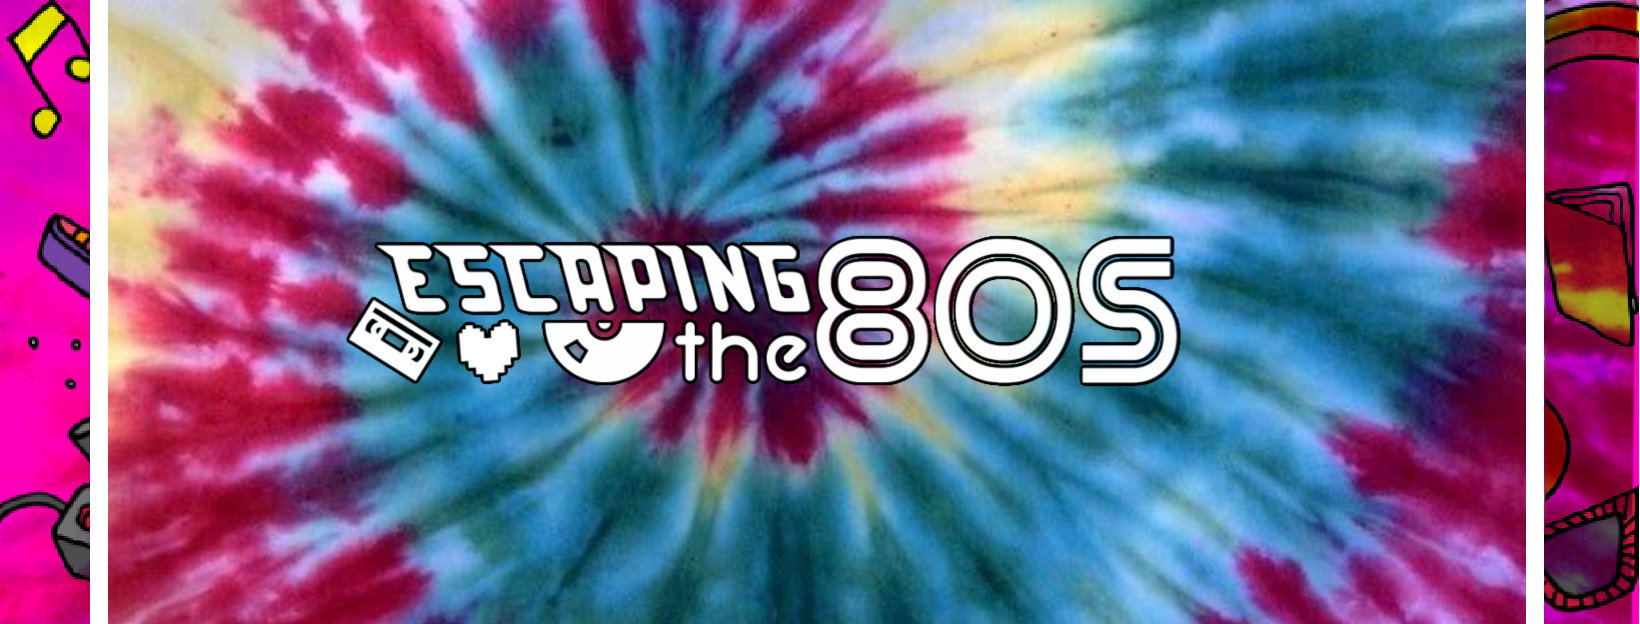 Escaping the 80s